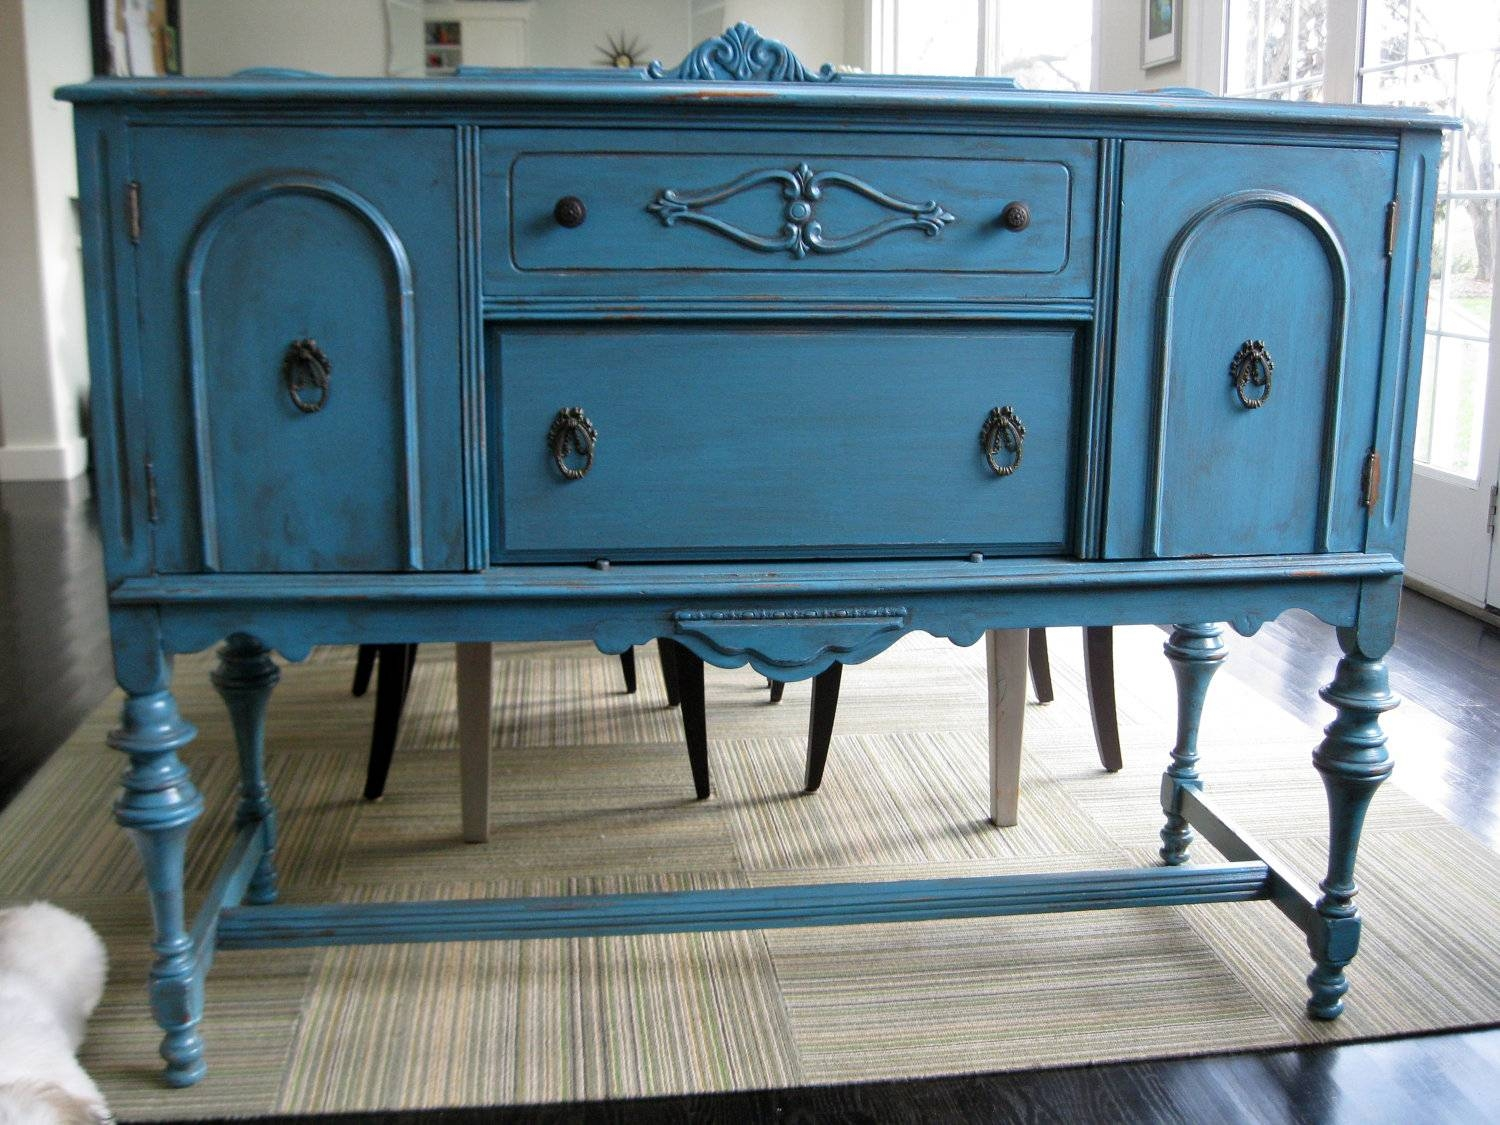 New Ideas Diy Blue Sideboard | Wood Furniture With Regard To Most Up To Date Blue Sideboards (#7 of 15)